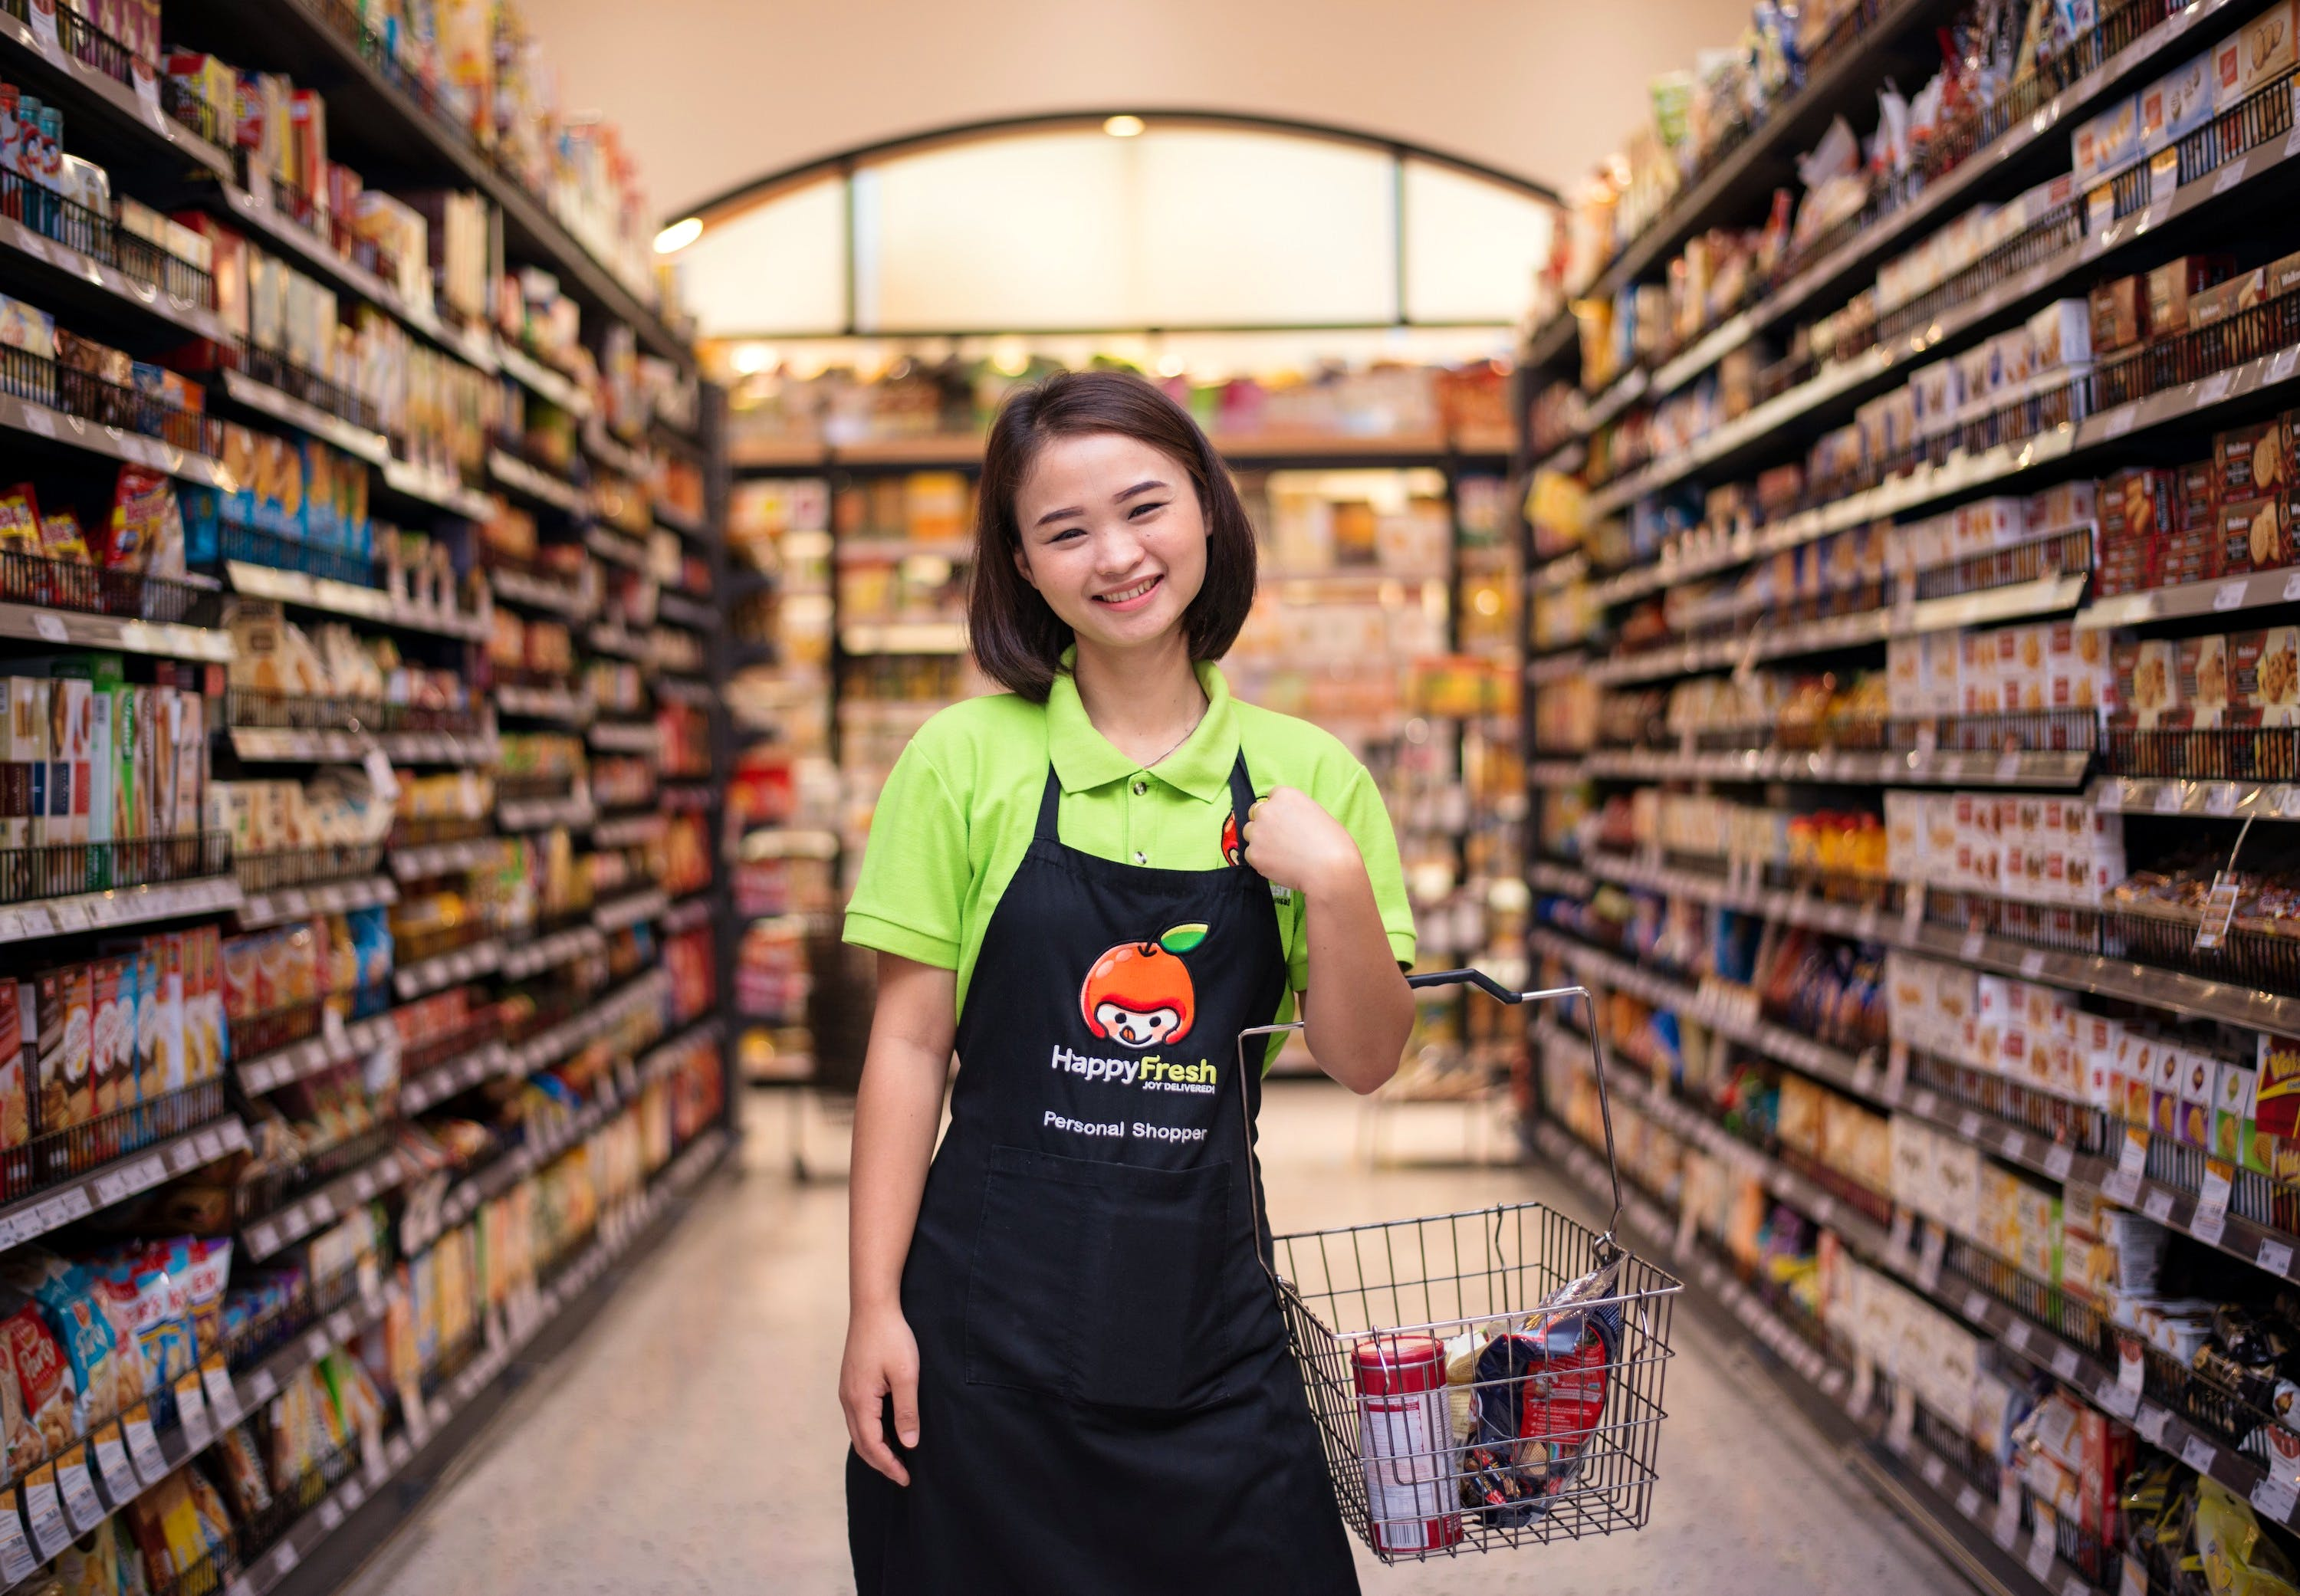 supermarket_aisle_shopper_smile_portrait_GIE_4768